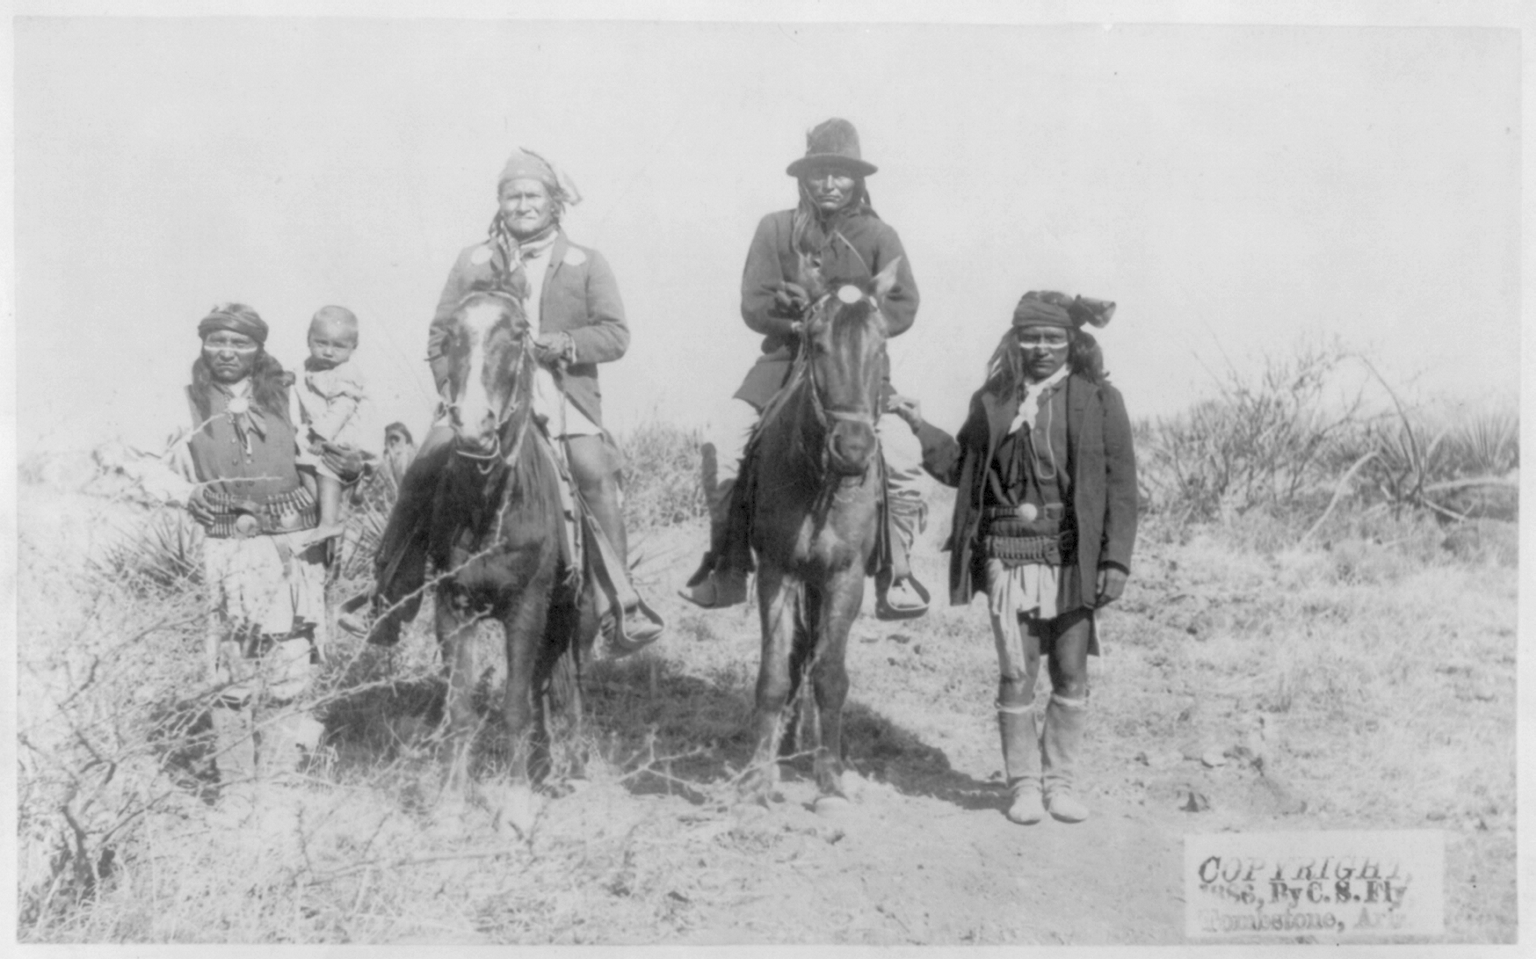 http://upload.wikimedia.org/wikipedia/commons/e/e7/Scene_in_Geronimo%27s_camp_II.png